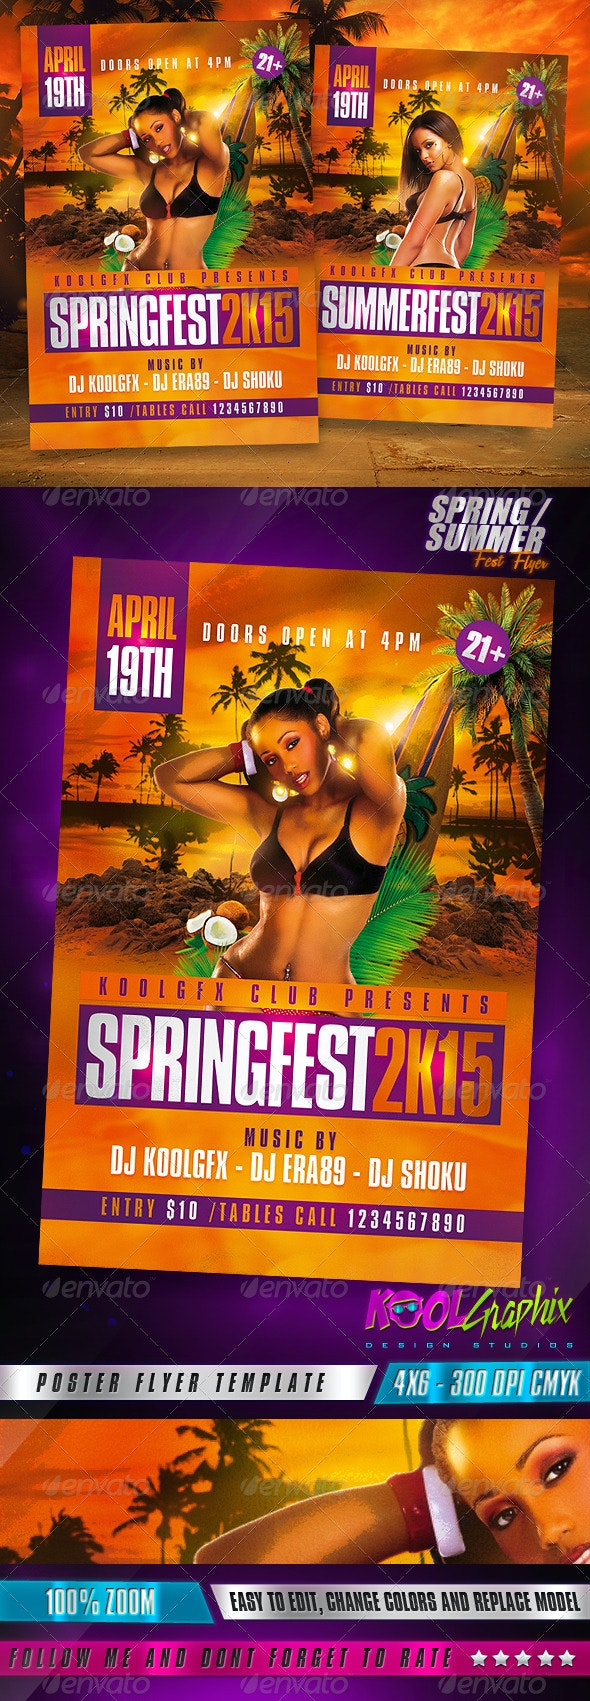 Spring / Summer Fest Party Flyer - Flyers Print Templates